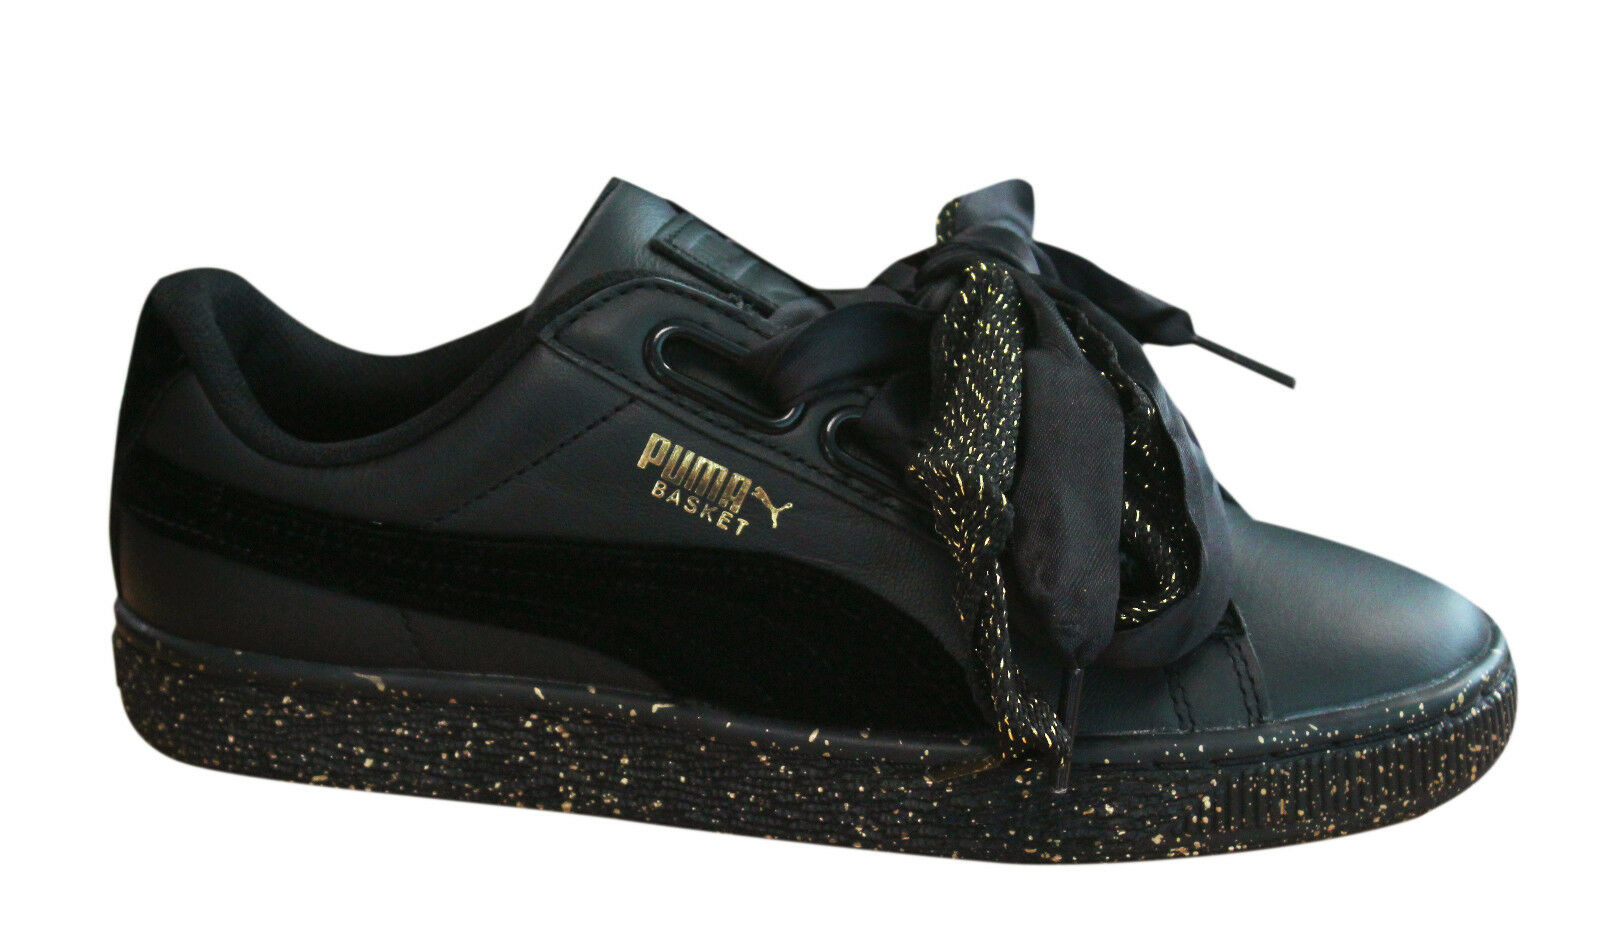 Puma Basket Heart Winterized Womens Trainers Lace Up Black Leather 366240 01 M17